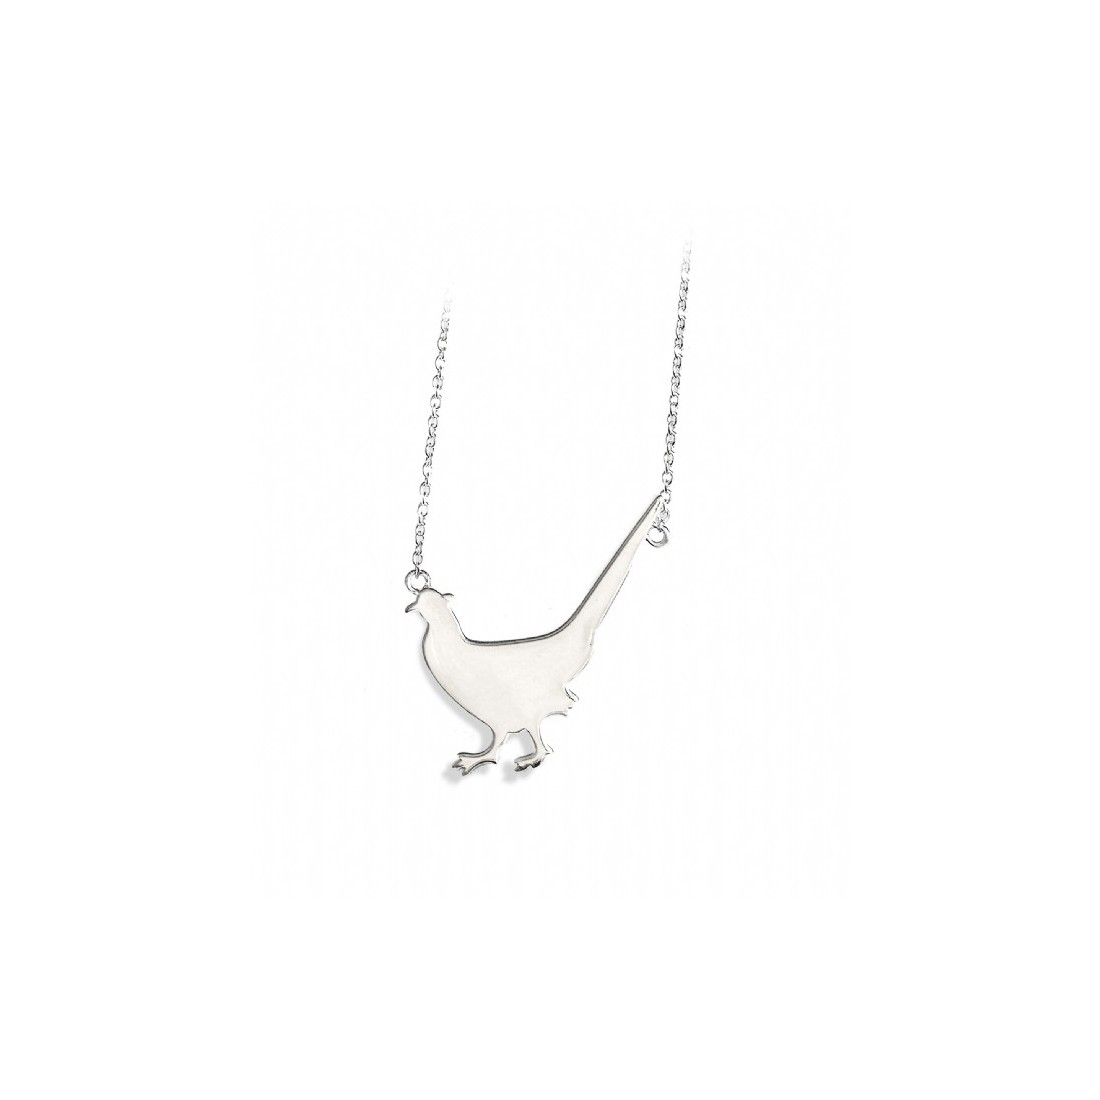 Exclusive Shotgun & Chelsea Bun Club Sterling Silver Pheasant Necklace - Shooting Jewellery